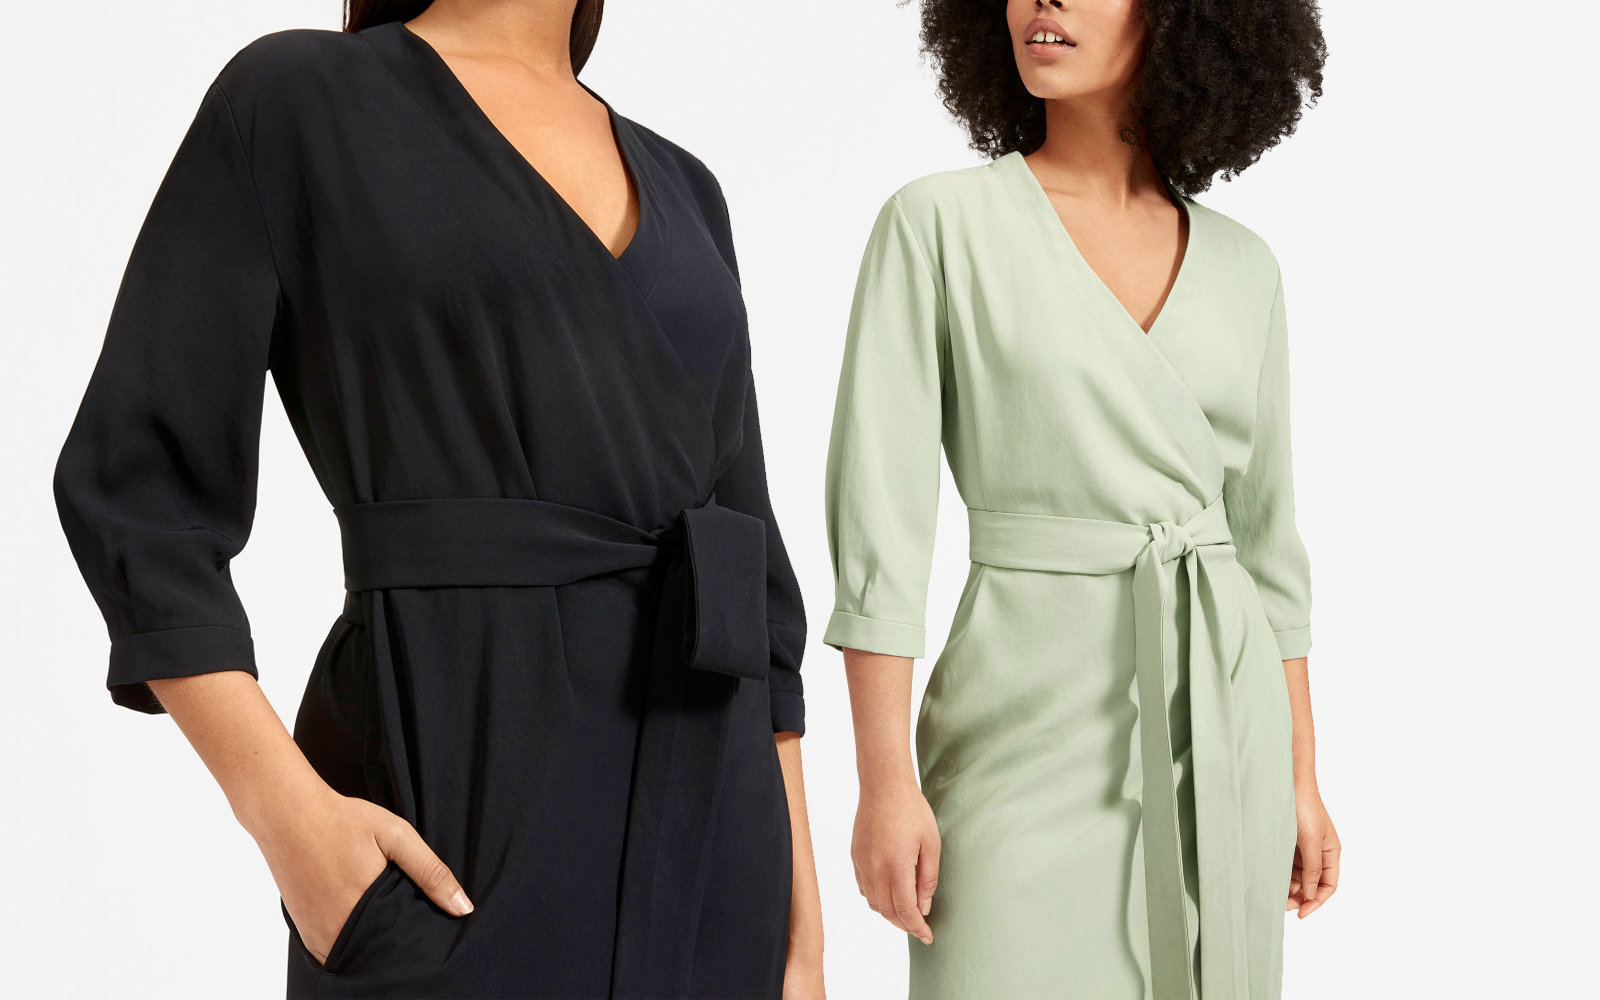 everlane-wrap-dresses-launch-EVERWRAP0319